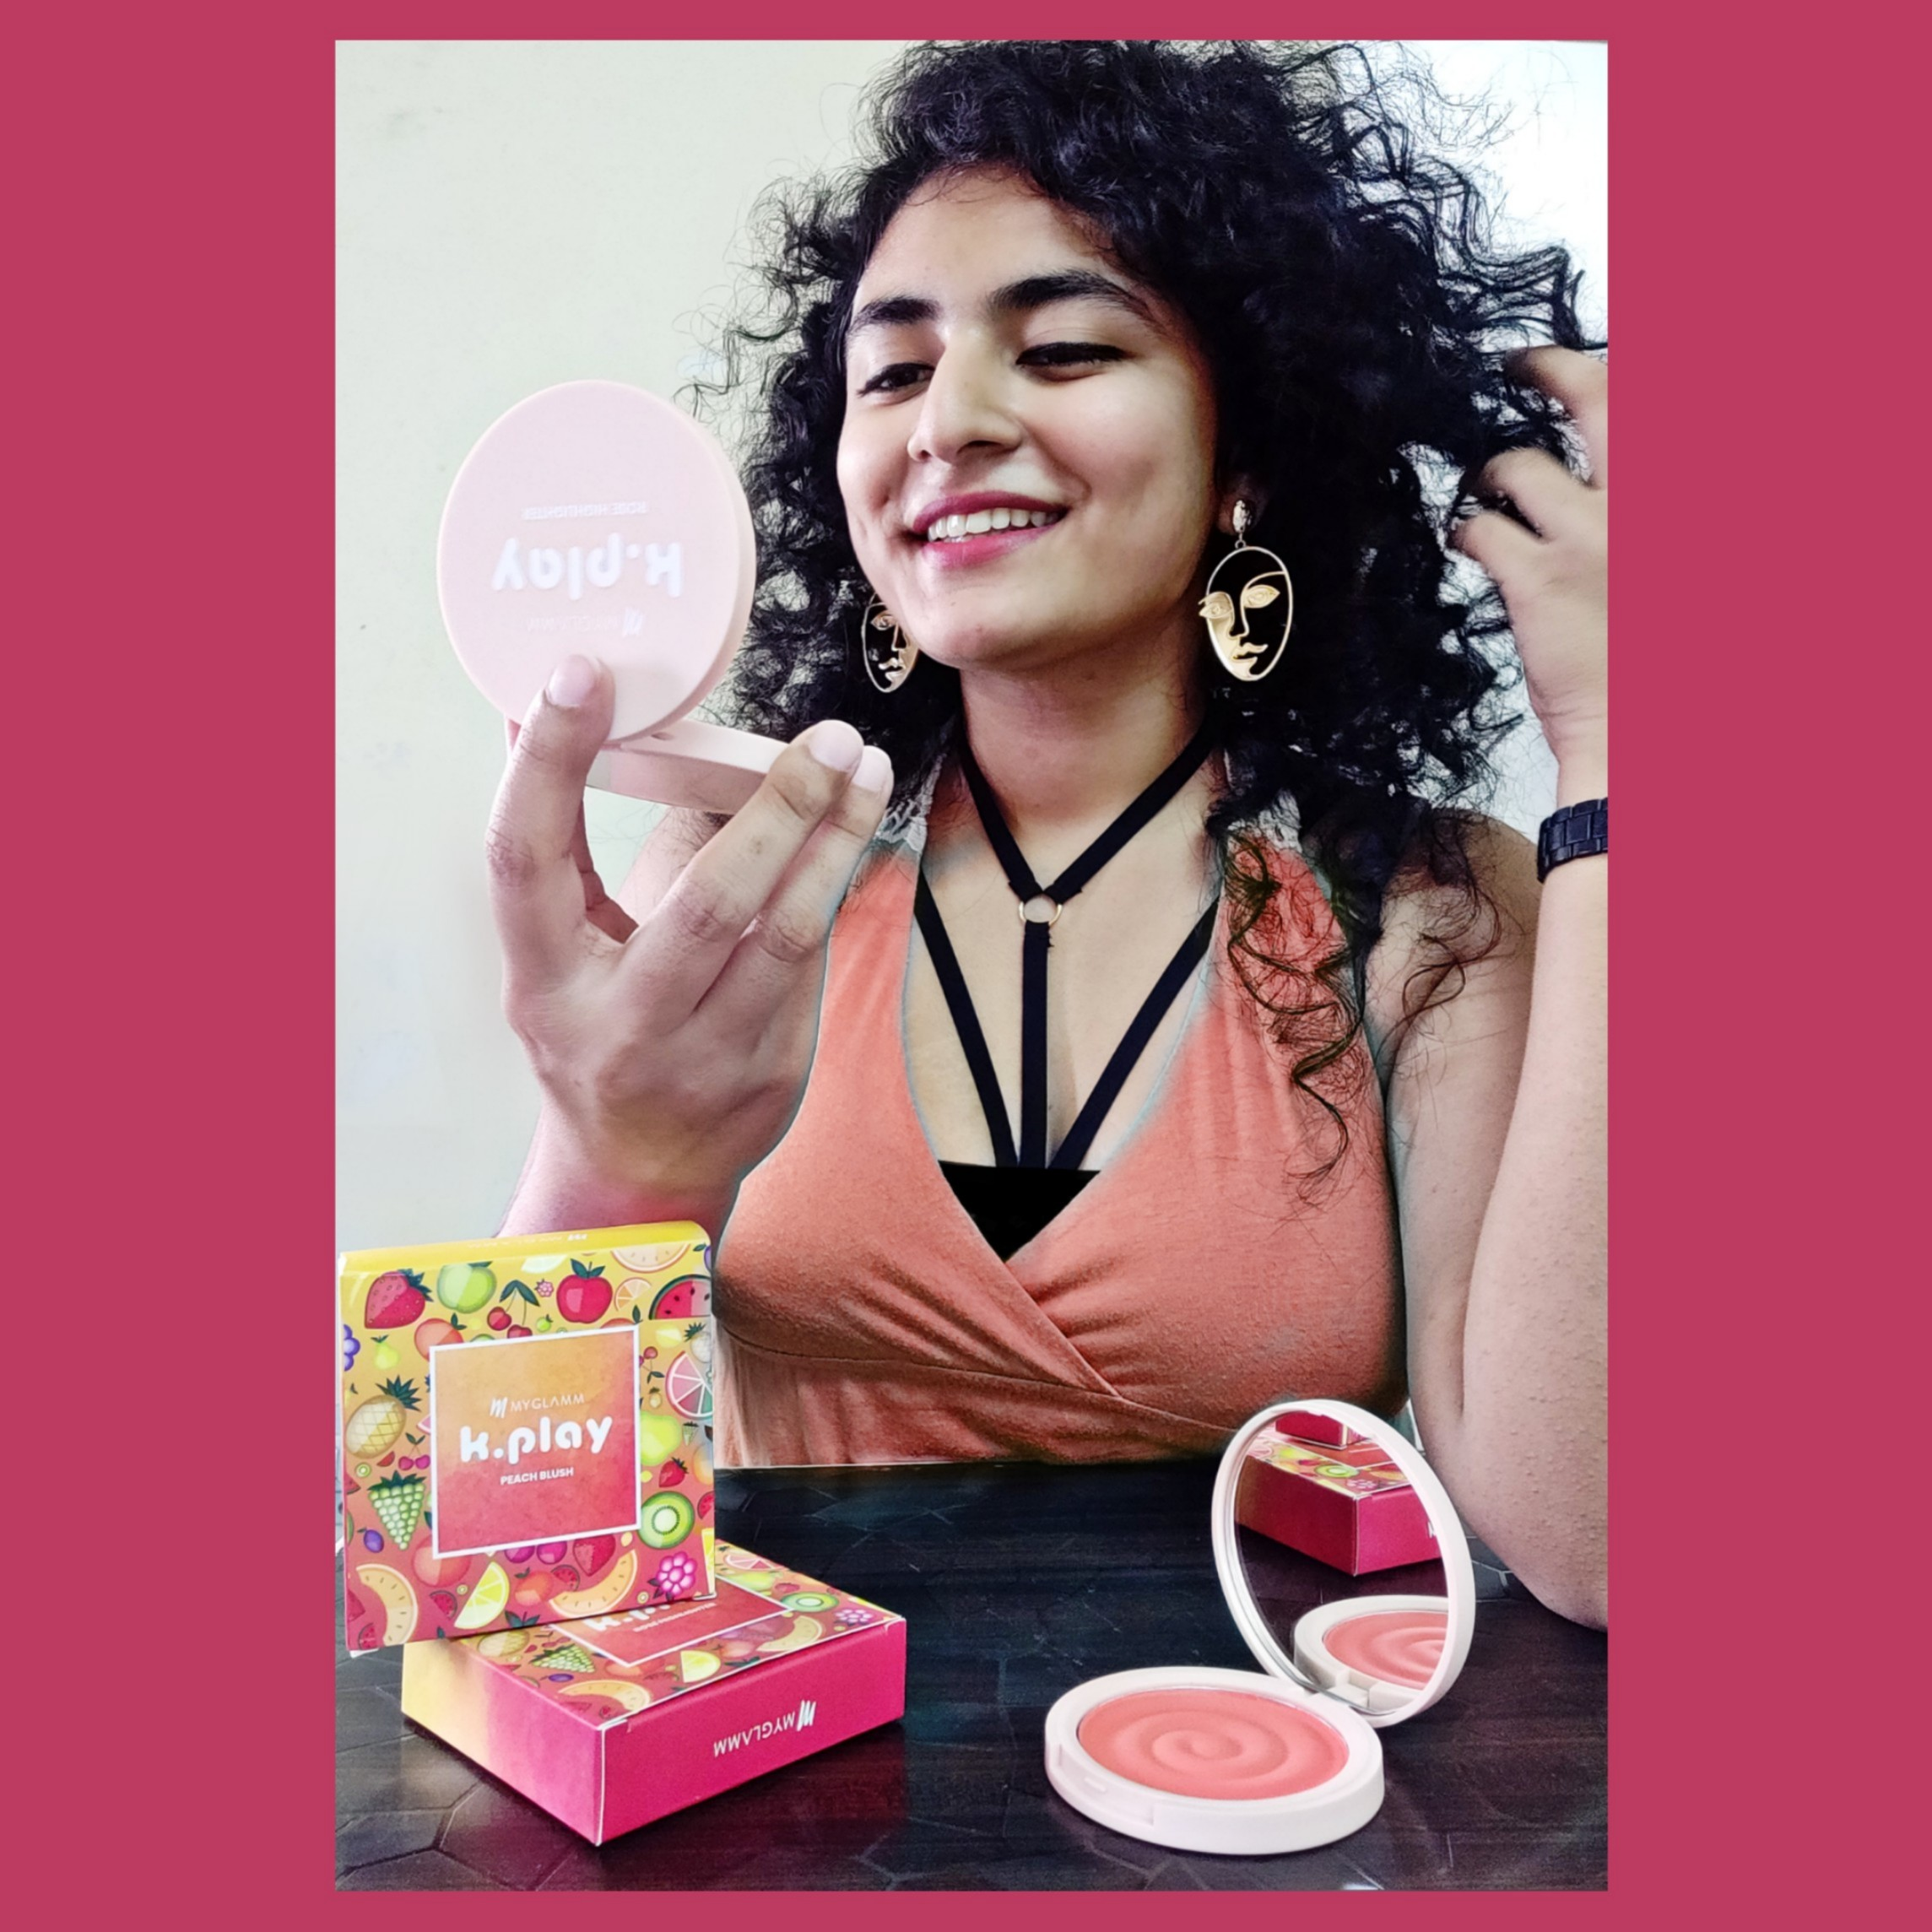 MyGlamm K.PLAY FLAVOURED BLUSH – SWEET PEACH-I blush perfectly-By dr._curlyyy-2